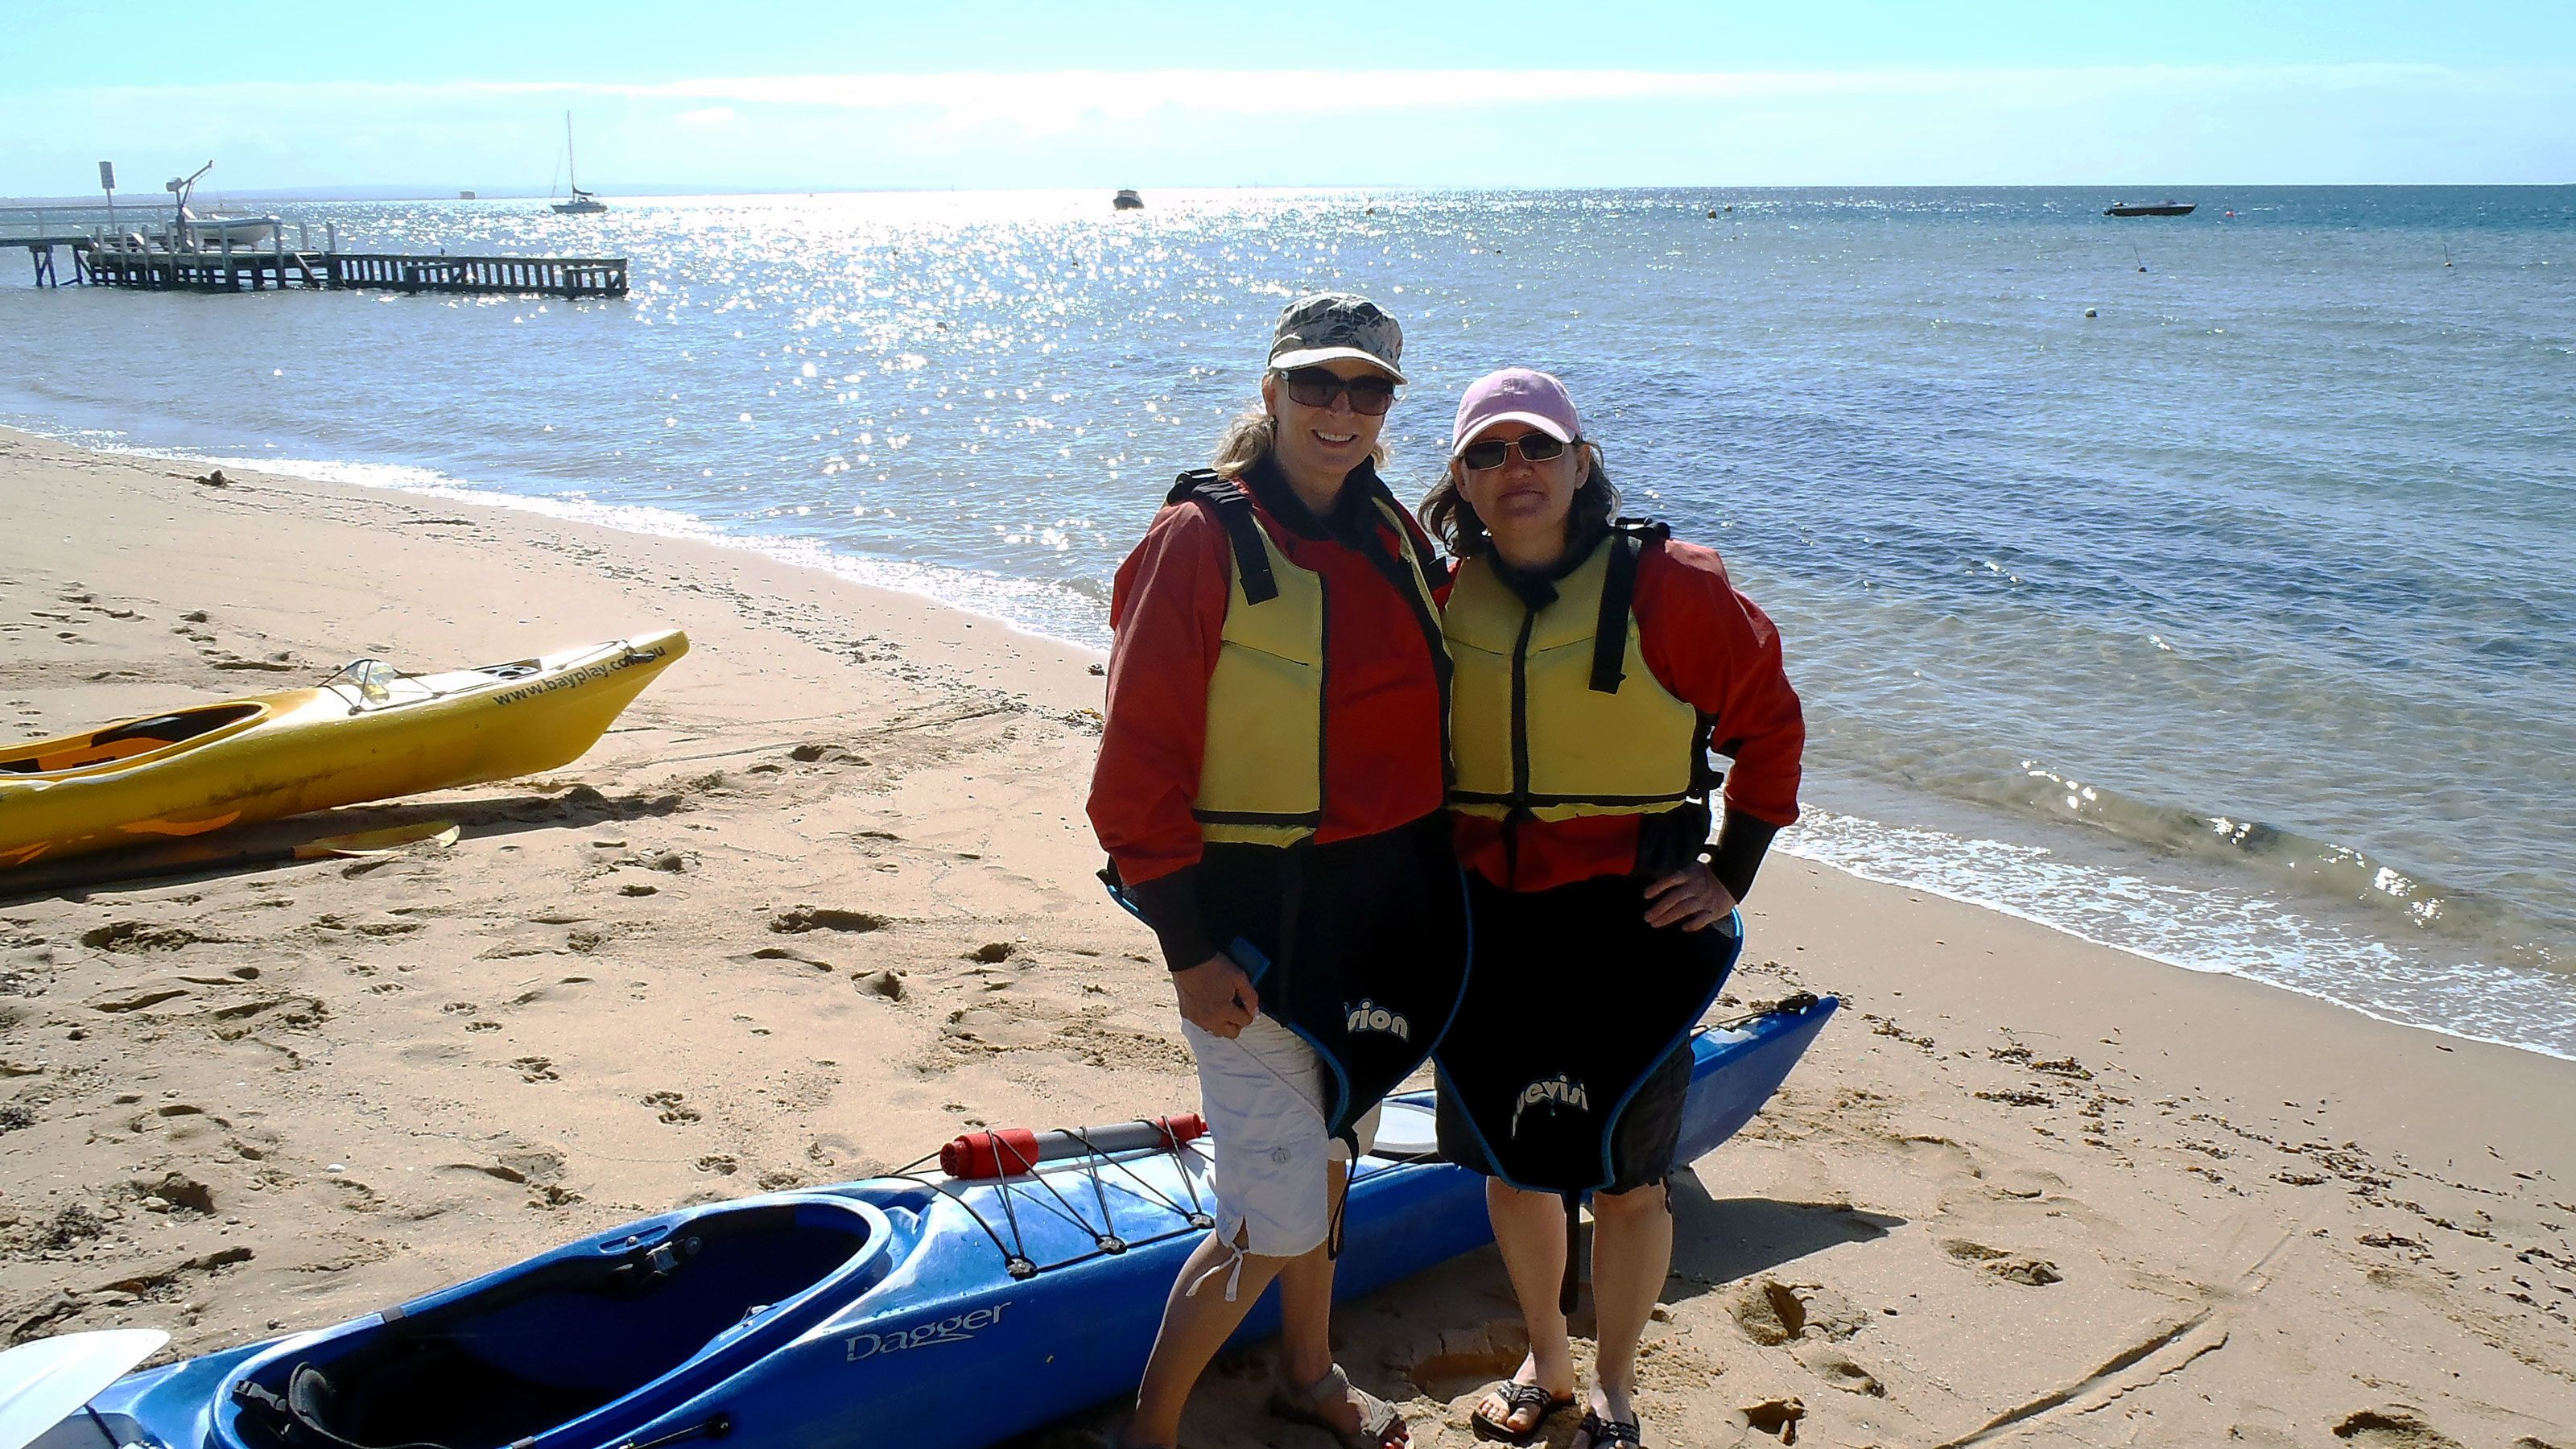 Two women with their Kayak on a beach at Mornington Peninsula